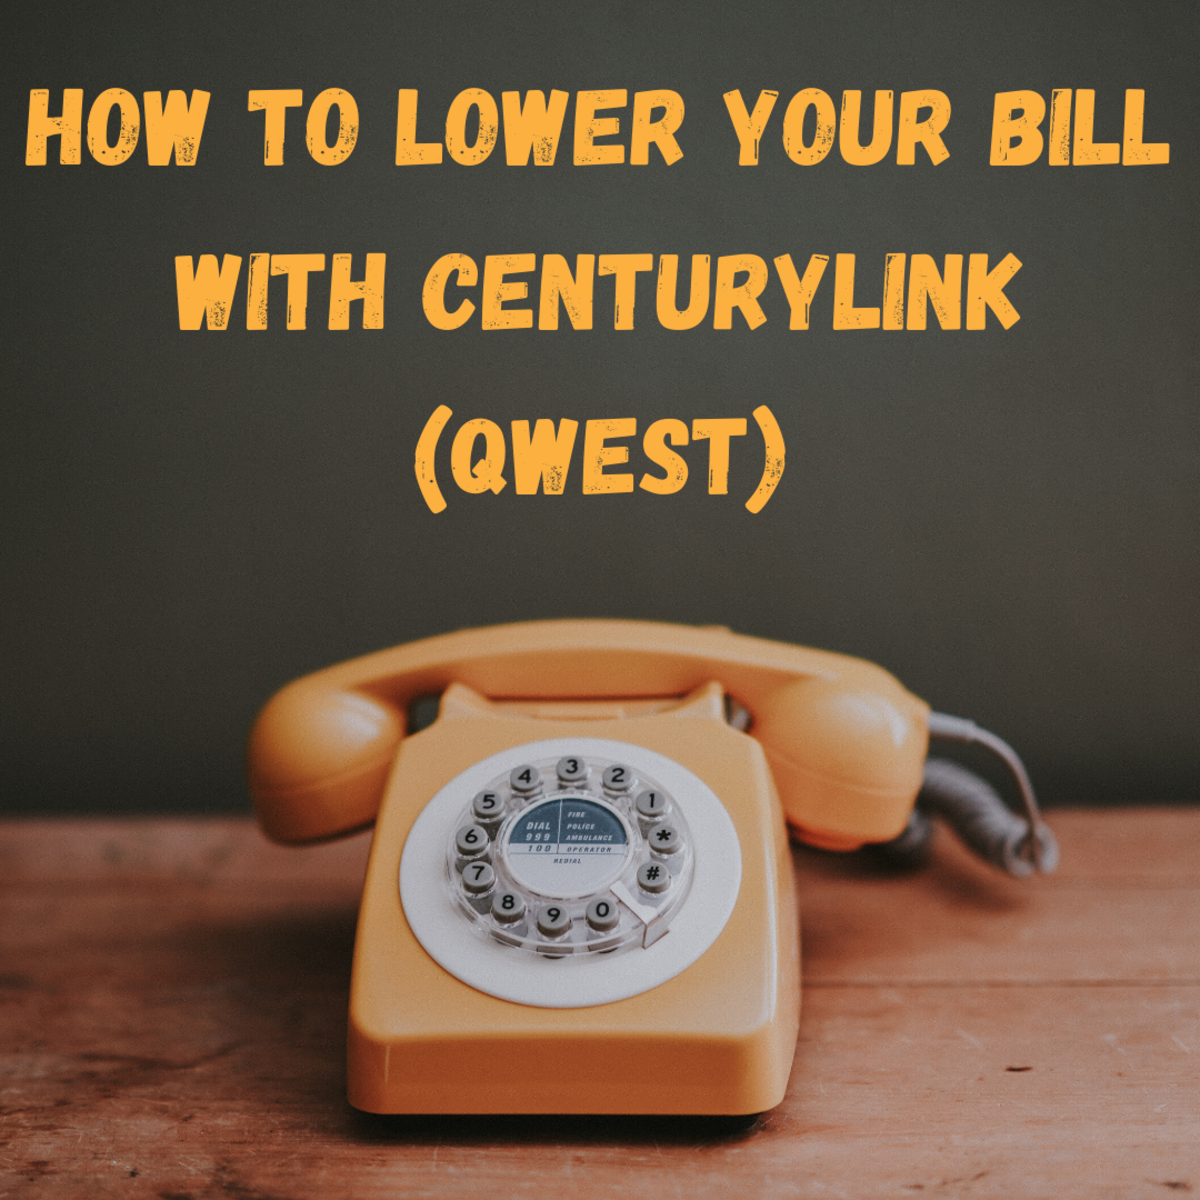 High Phone or Internet Bill? Call Qwest and demand a lower rate on your phone or internet bill.